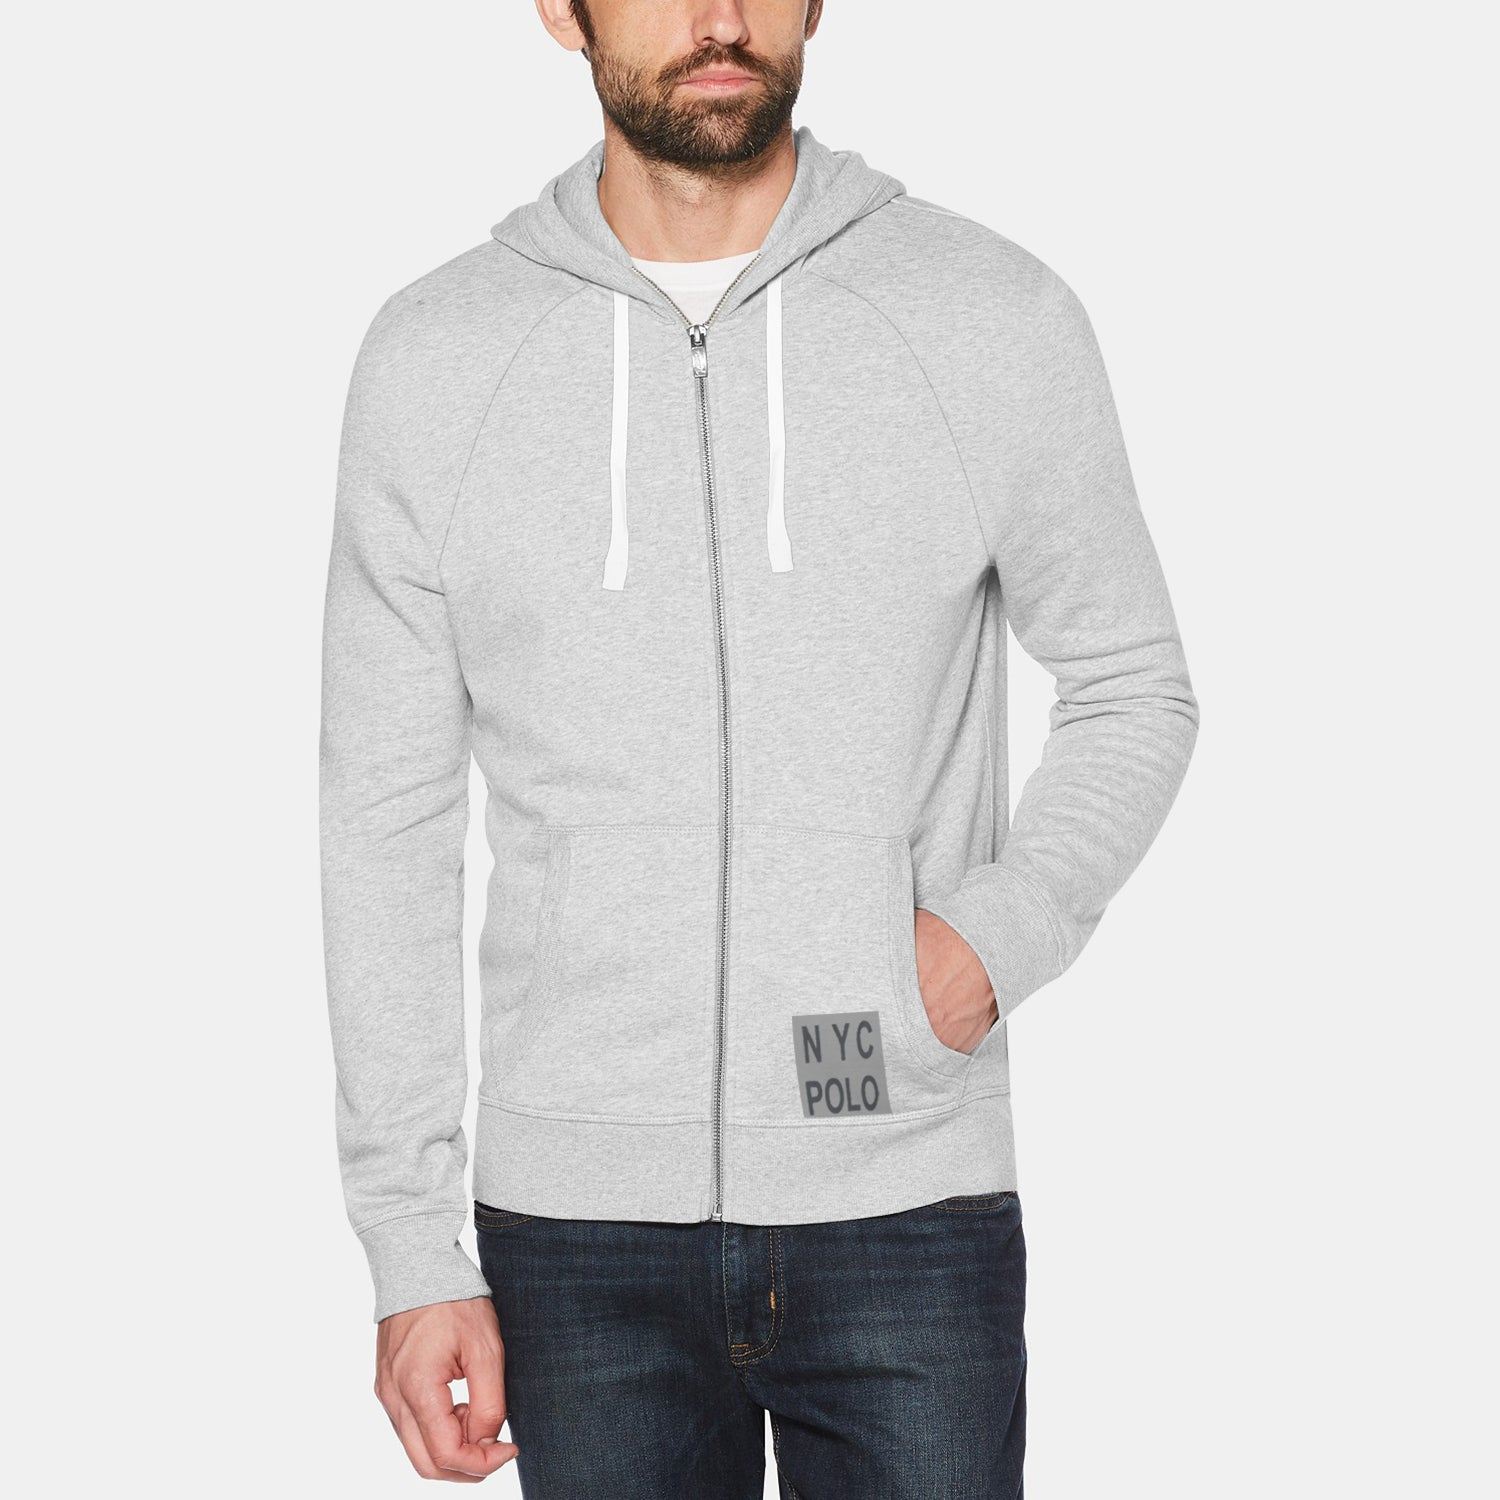 NYC Polo Fleece Zipper Hoodie For Men-Grey Melange-BE12900